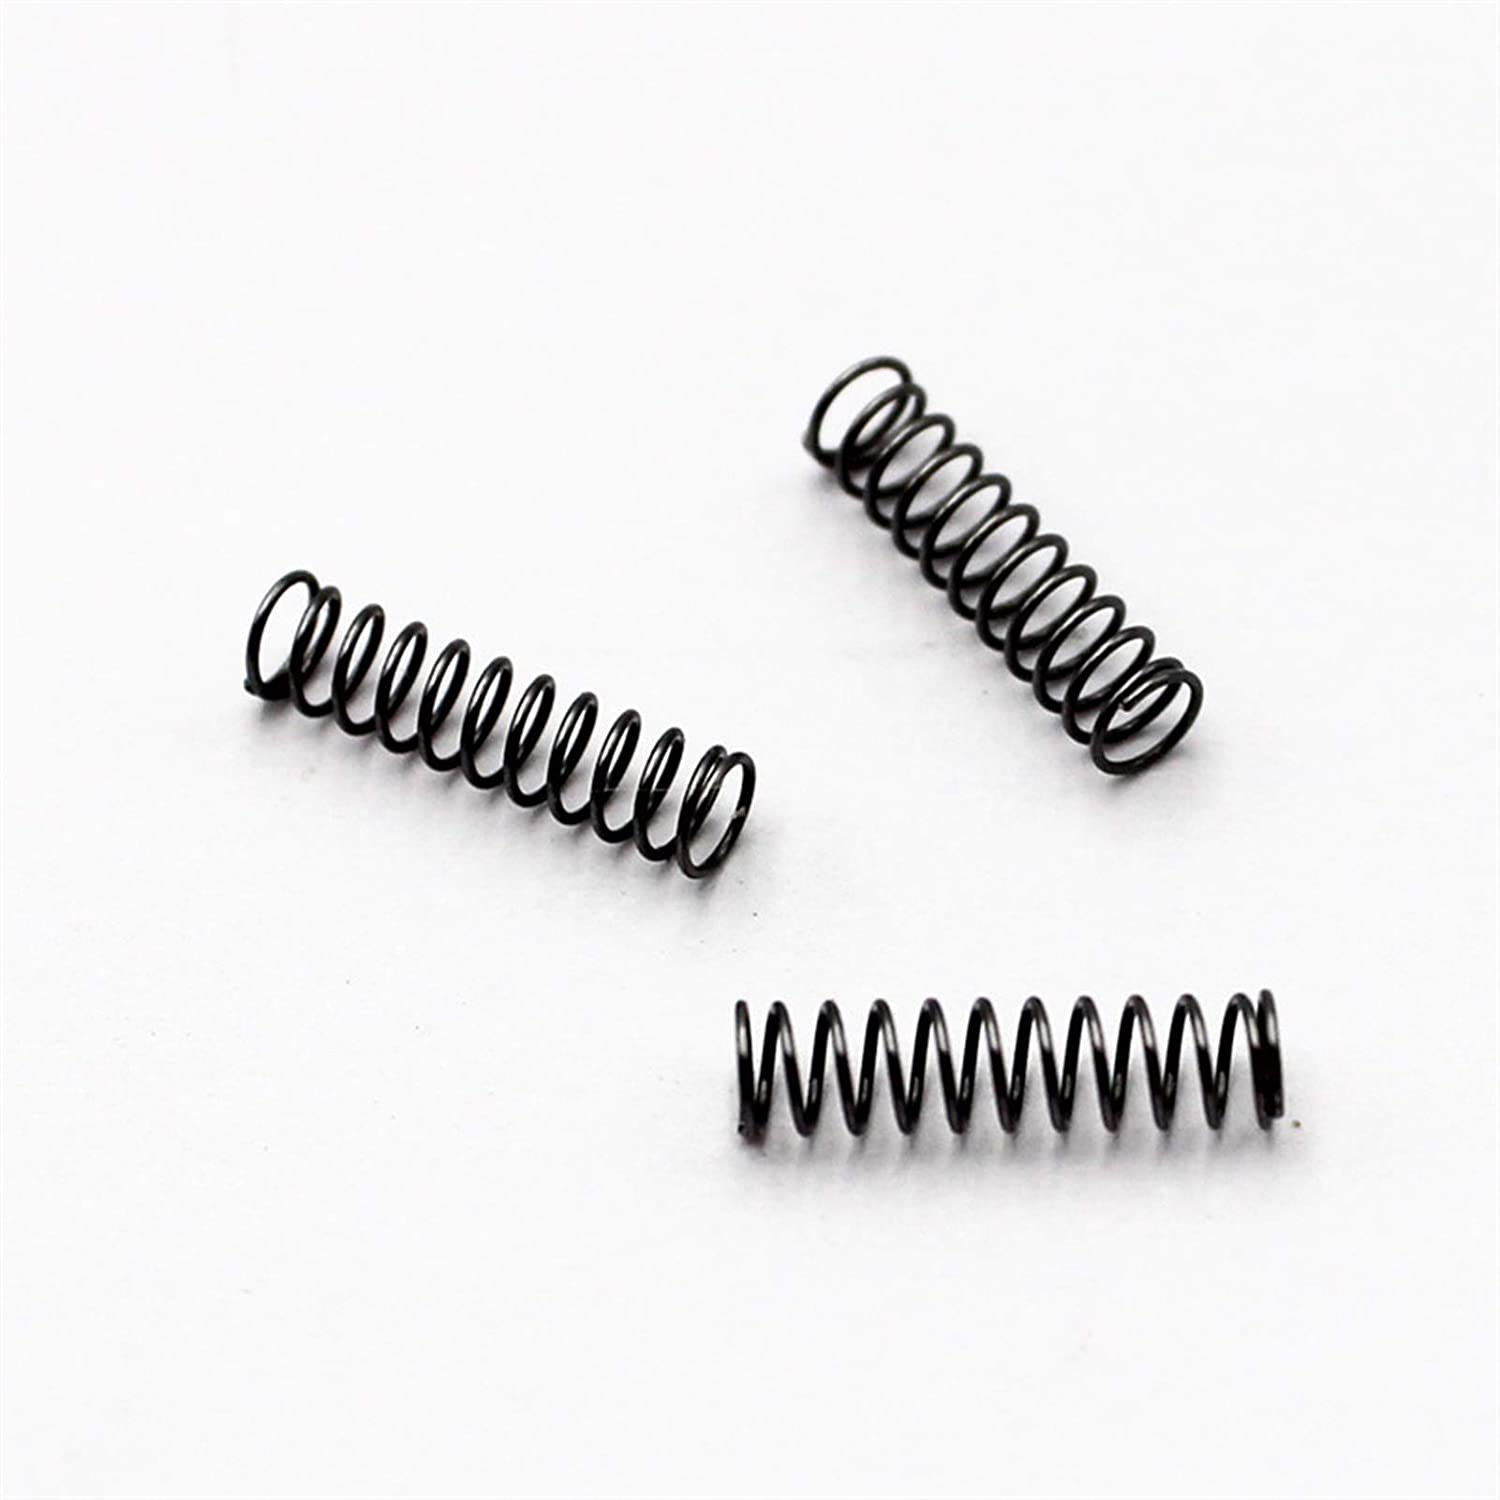 Length : 0.7x4x5mm 5pcs Temhyu Shuxiang-spring Small compression spring Wire diameter 0.7mm OD 4mm Length 5mm to 50mm